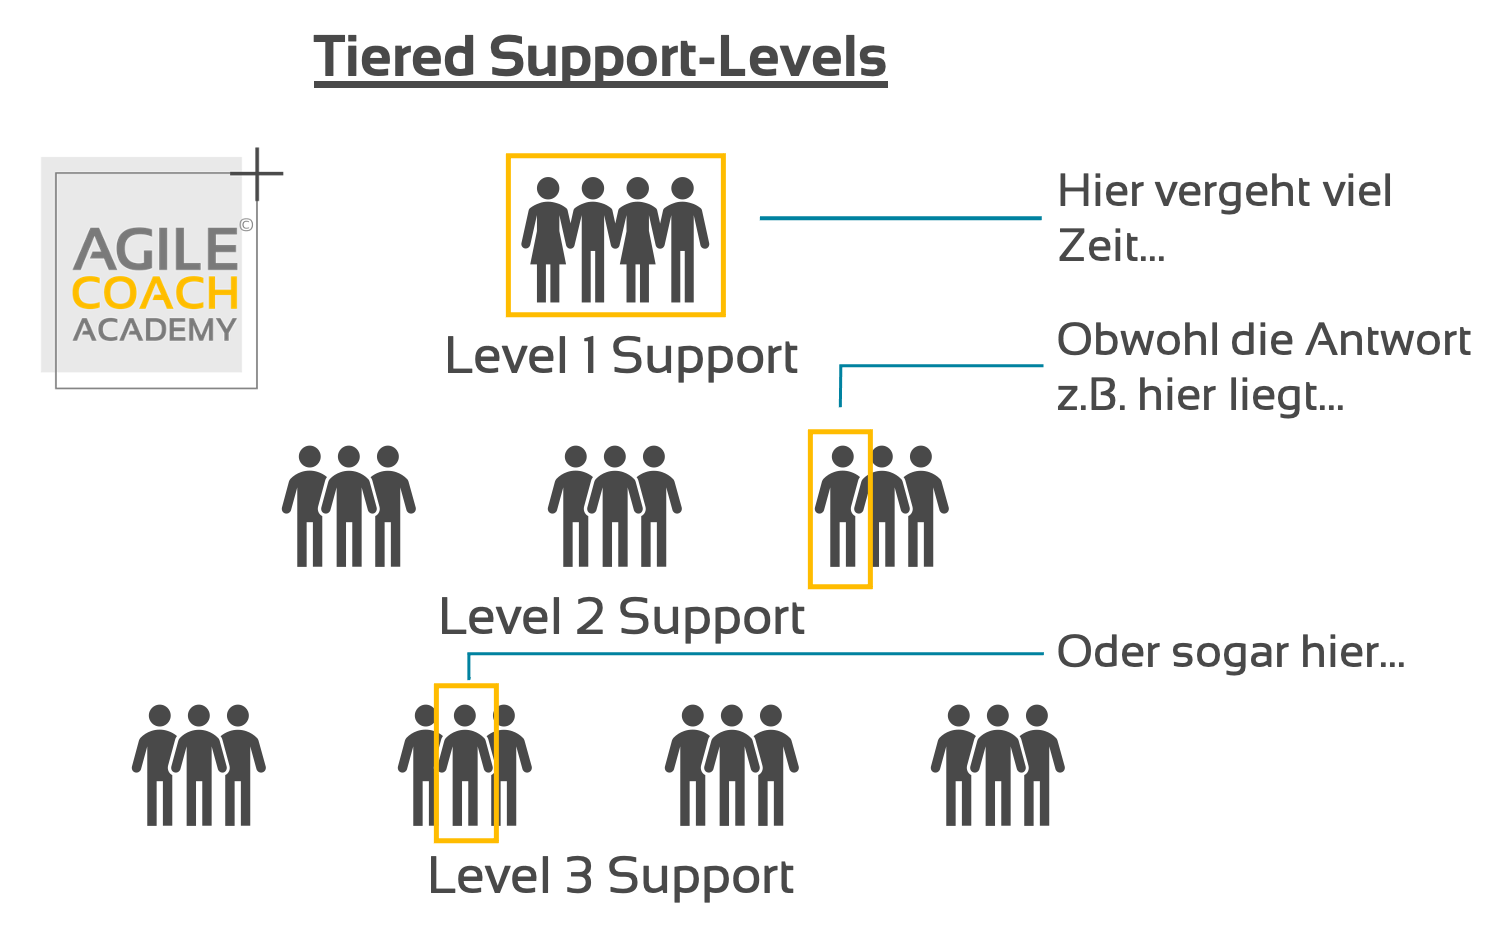 Tiered Support Levels